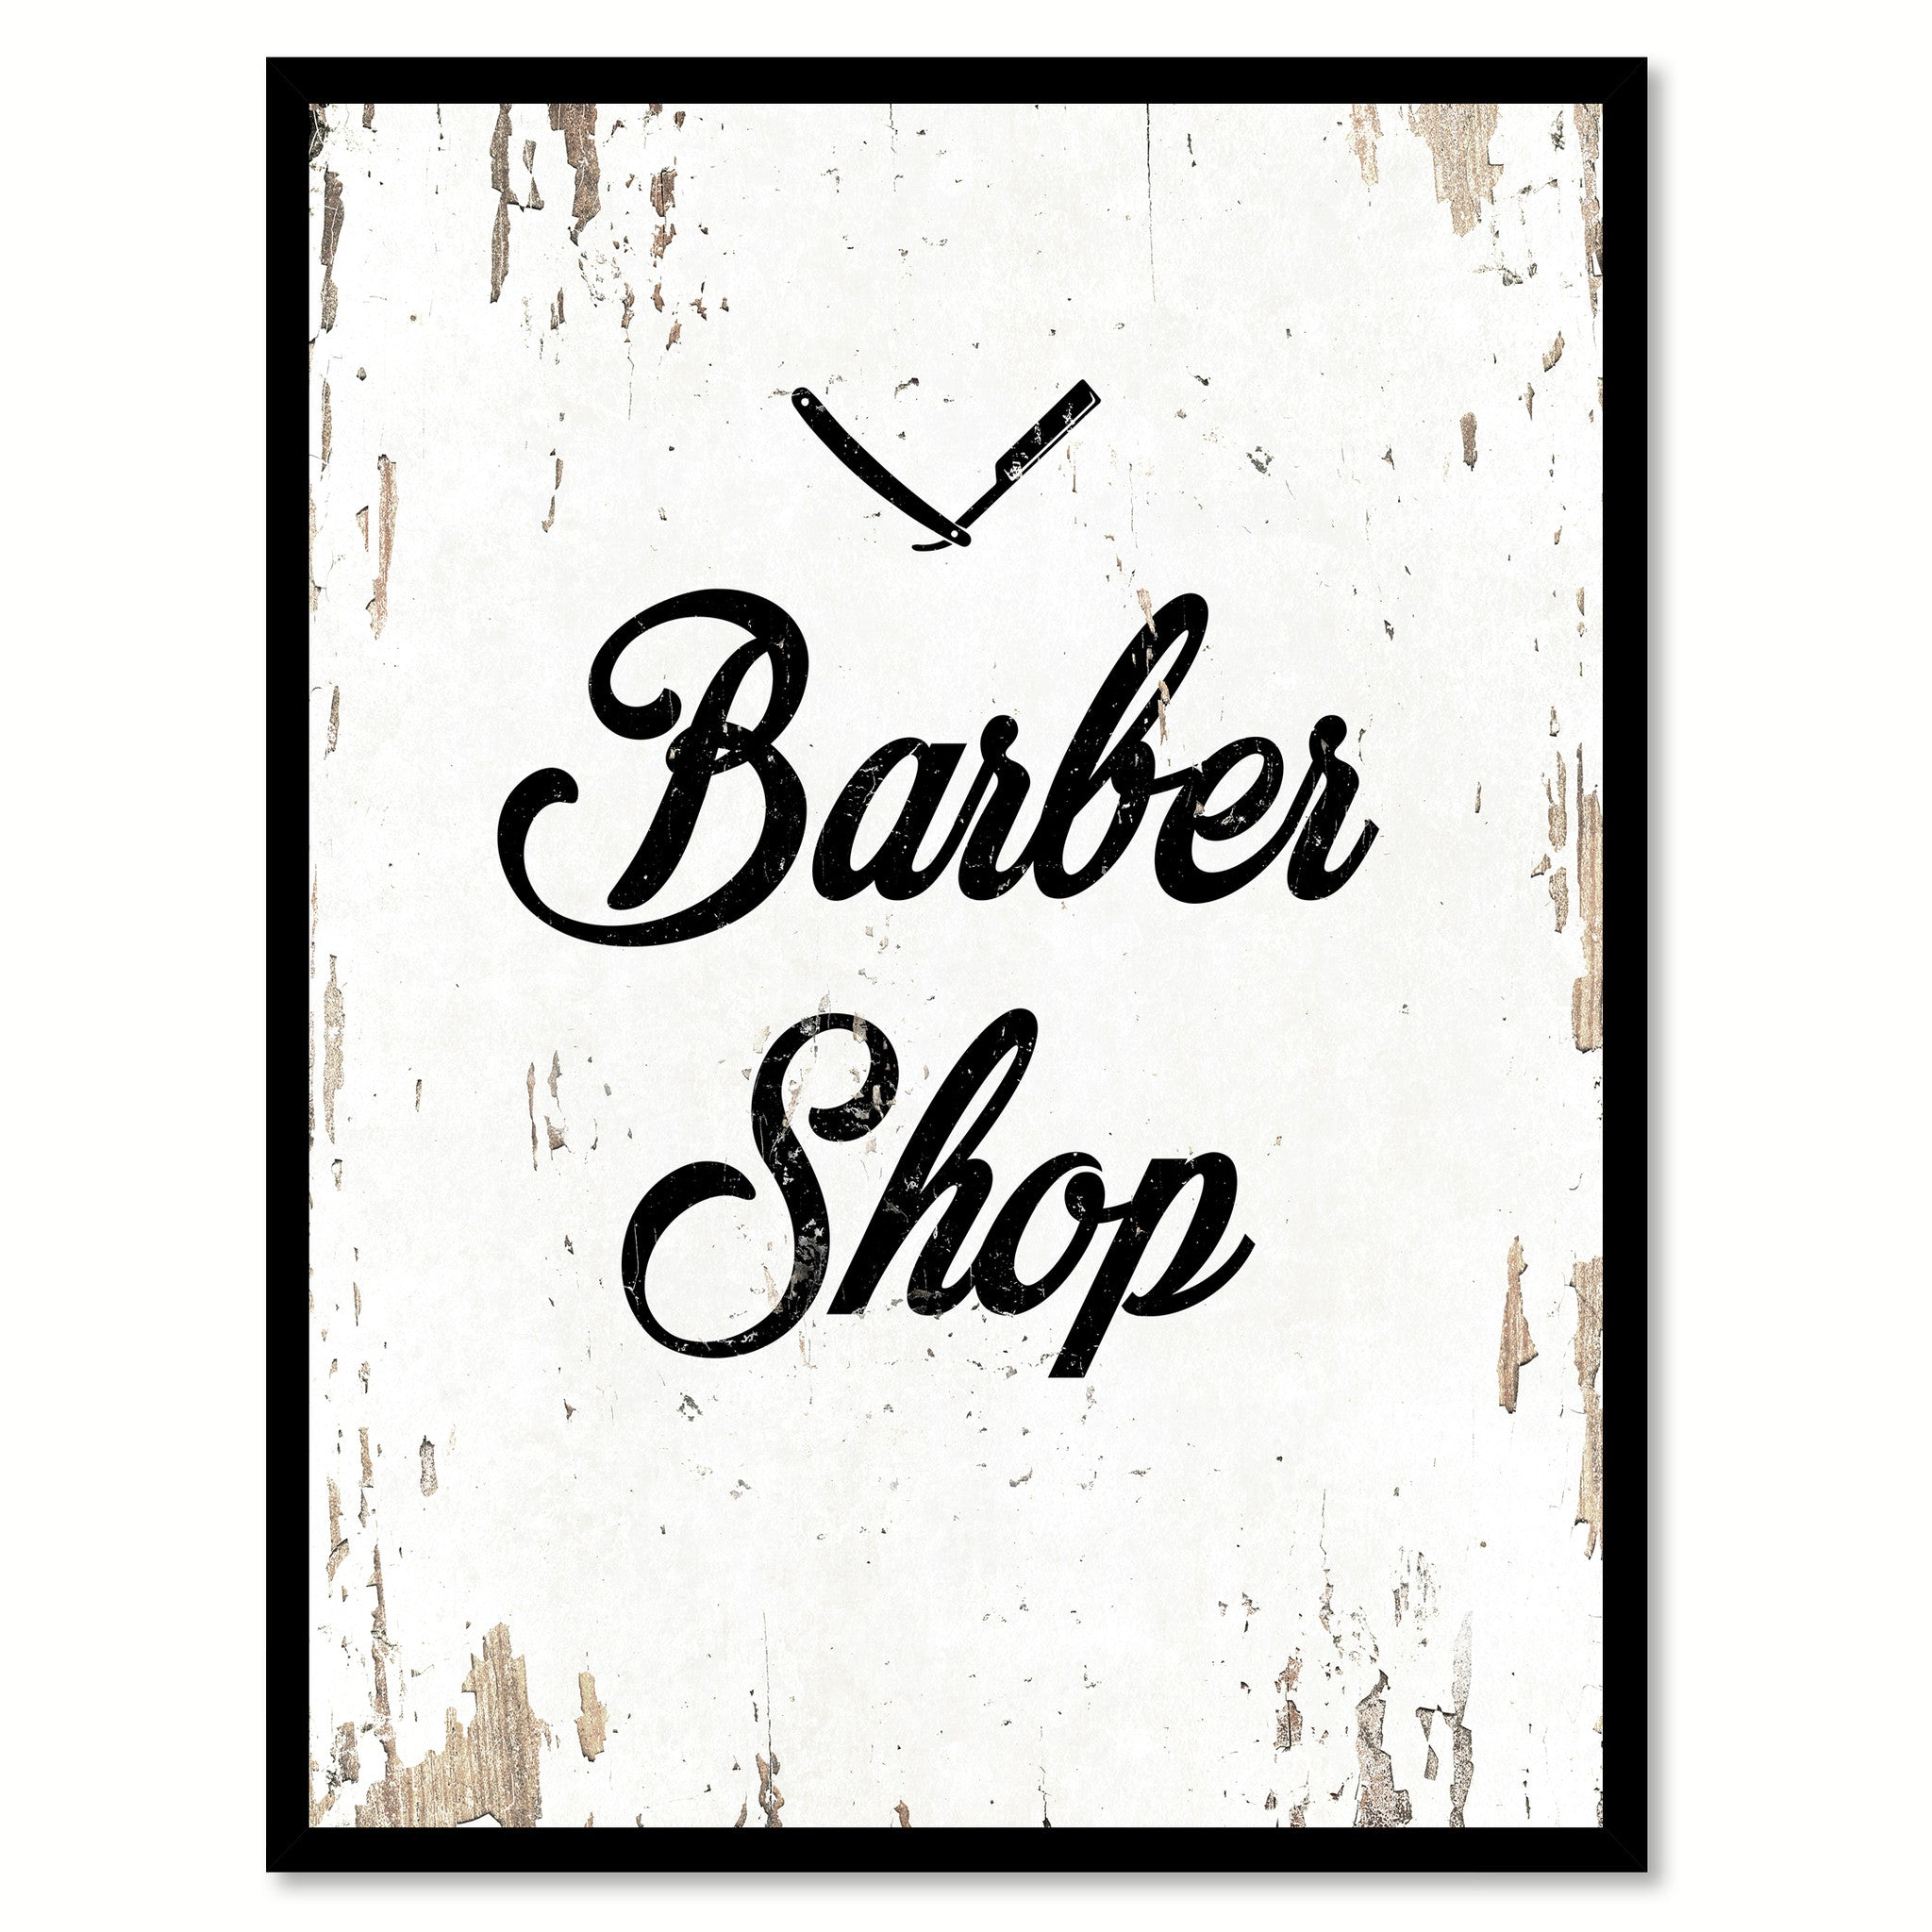 Barber Shop Inspirational Motivation Quote Saying Canvas Print With